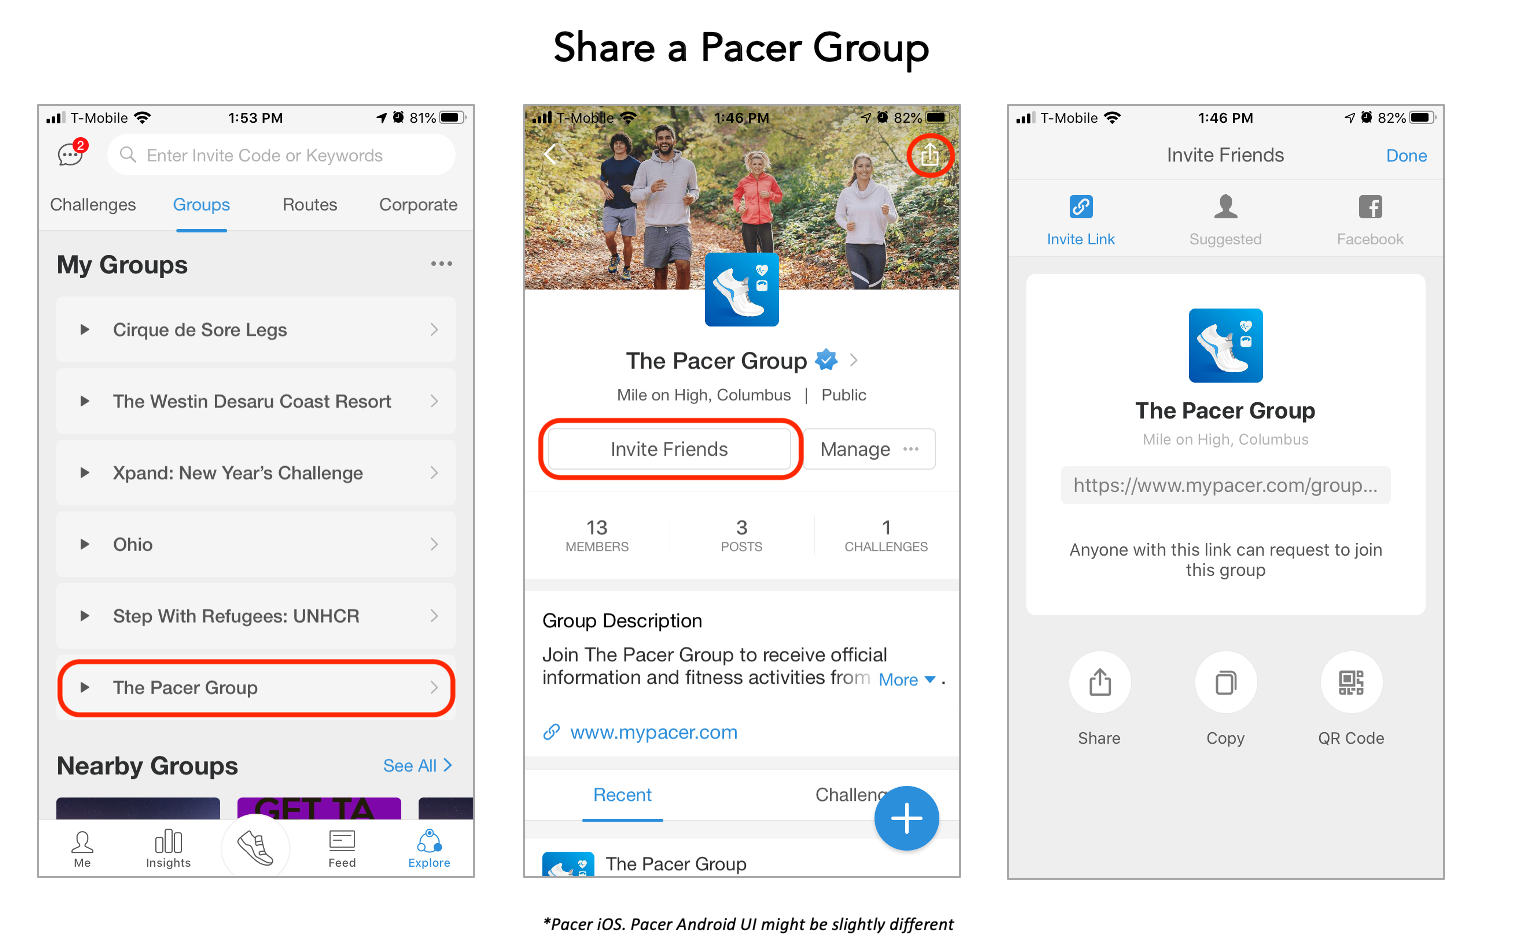 Share_Pacer_Group.png